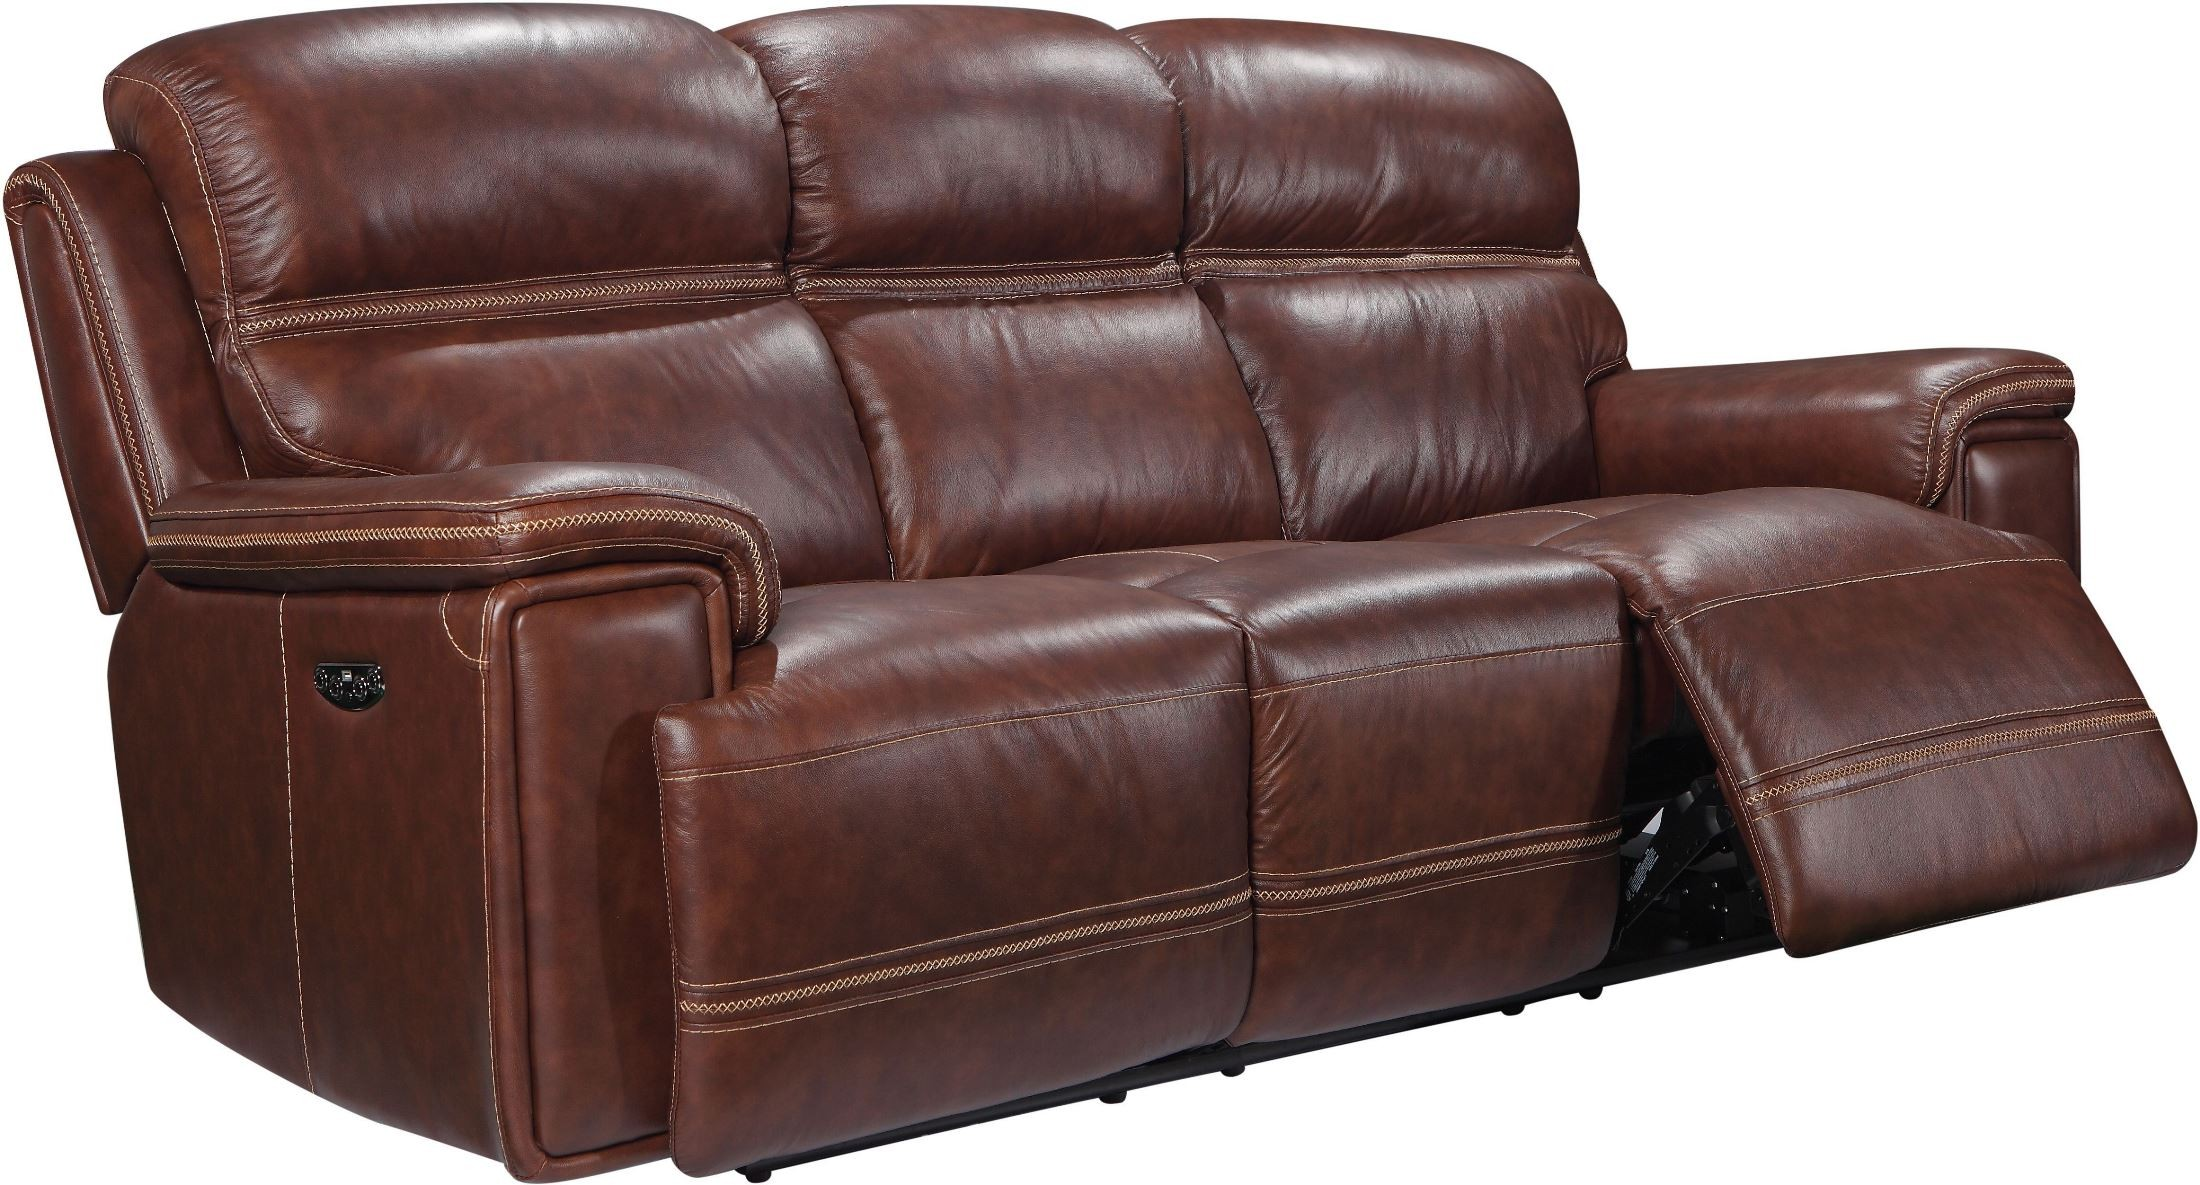 shae fresno brown leather reclining sofa from leather italia coleman furniture. Black Bedroom Furniture Sets. Home Design Ideas